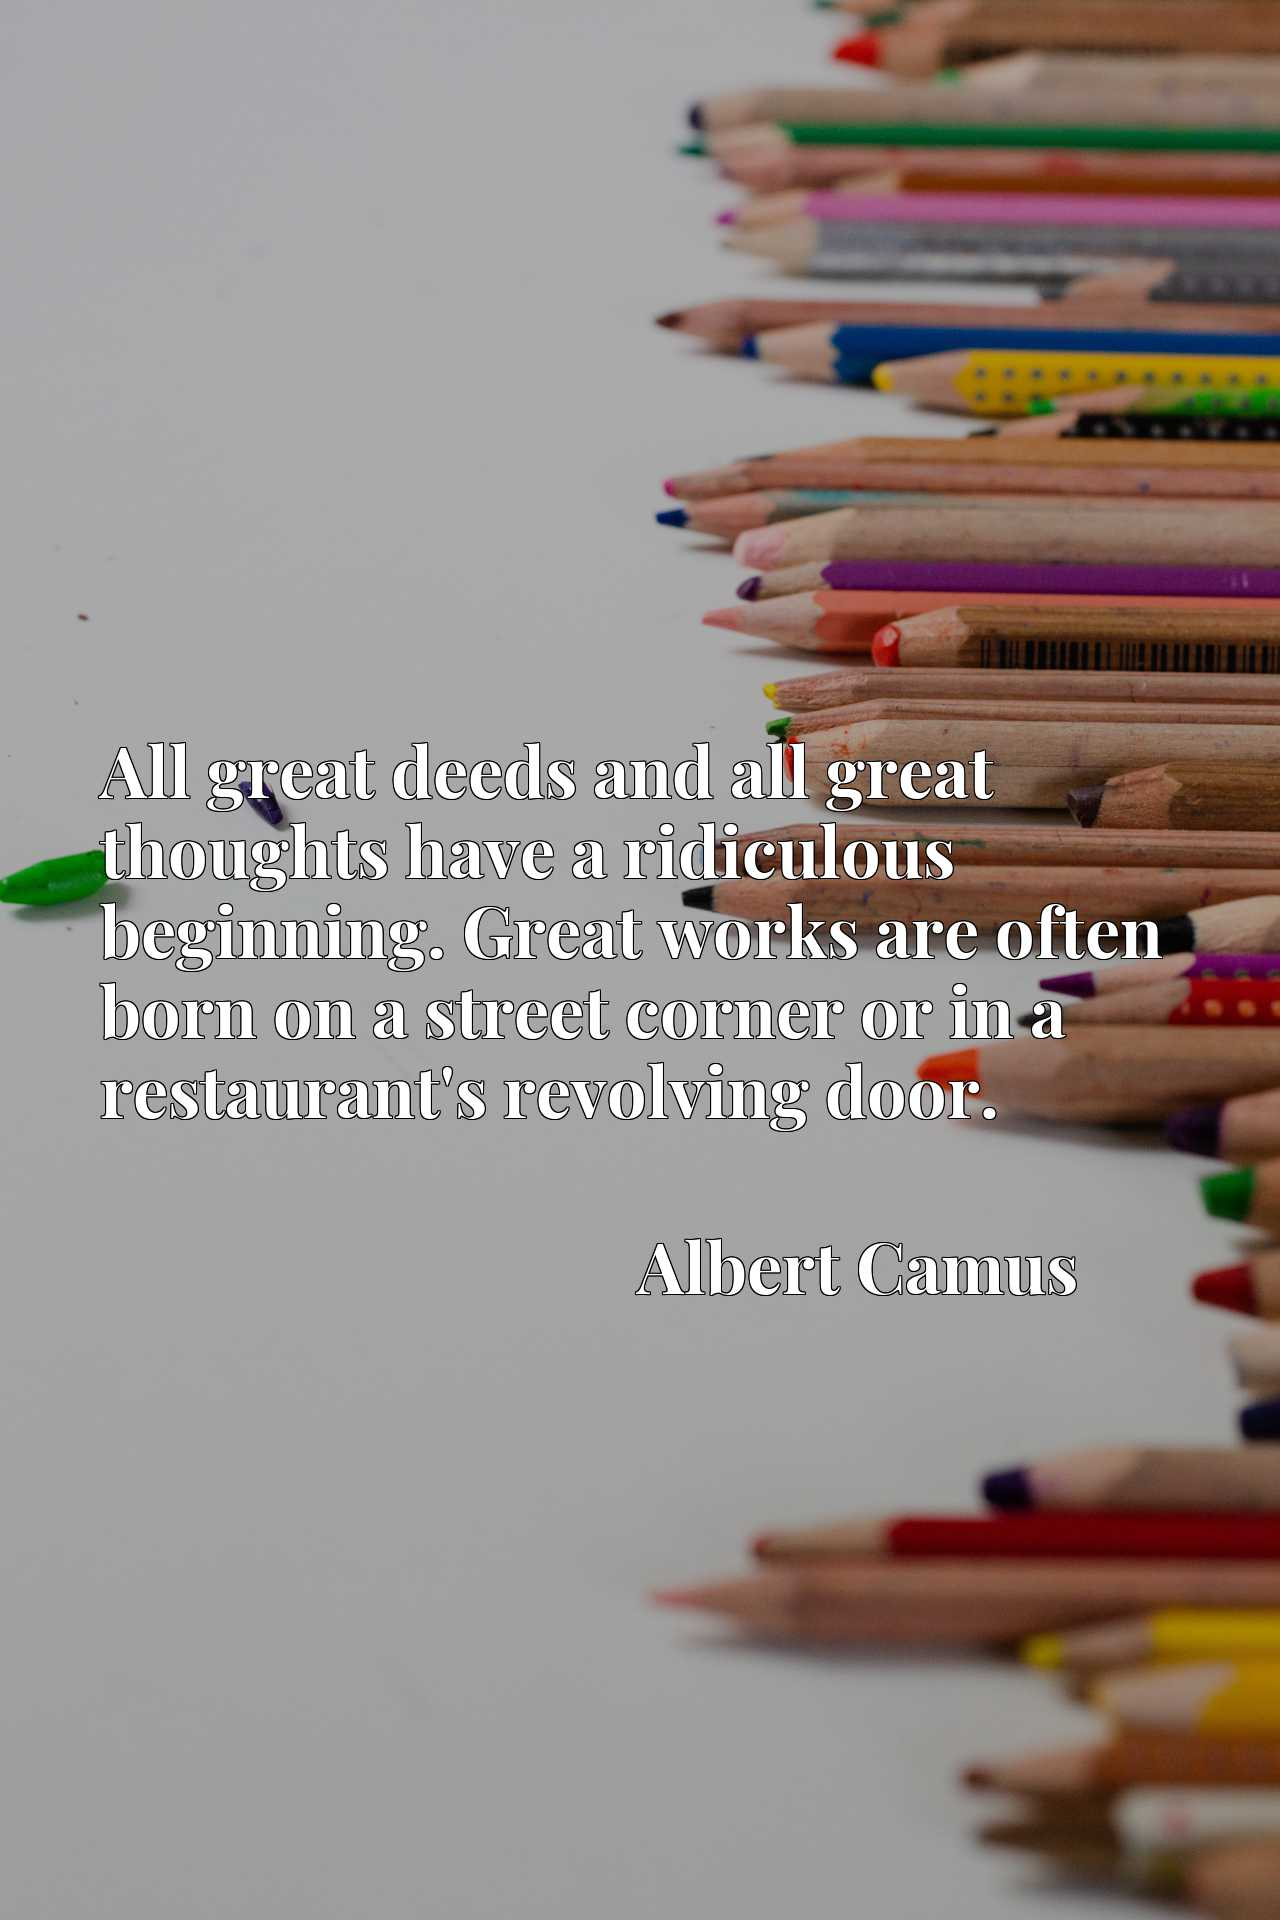 All great deeds and all great thoughts have a ridiculous beginning. Great works are often born on a street corner or in a restaurant's revolving door.